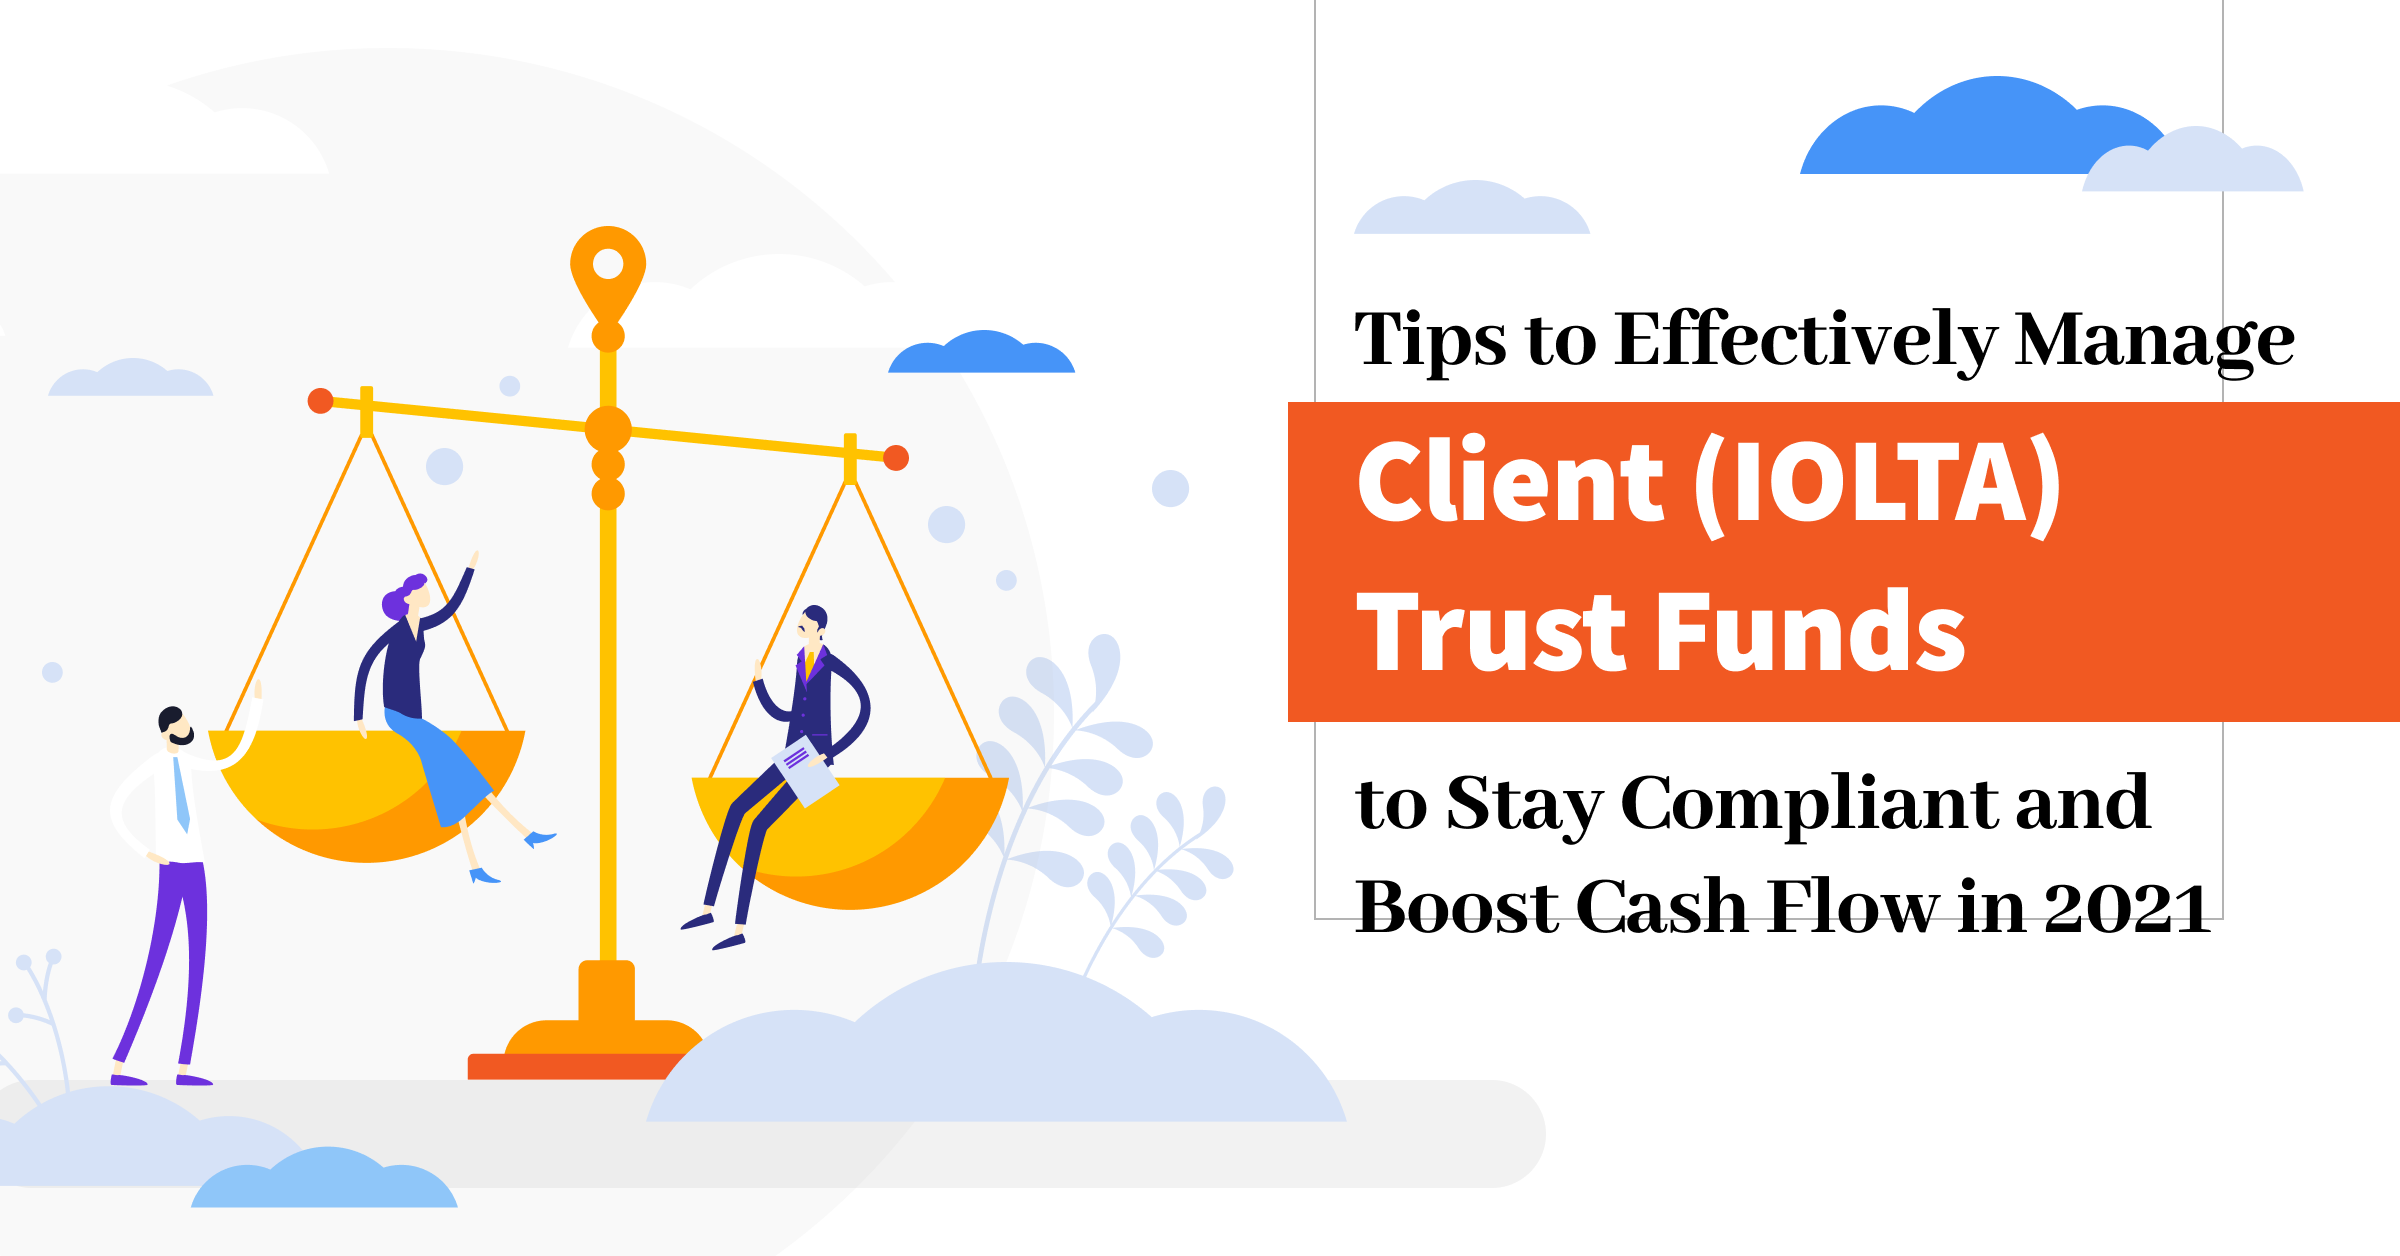 Tips to Effectively Manage Client Trust Funds (IOLTA) to Stay Compliant and Boost Cash Flow in 2021